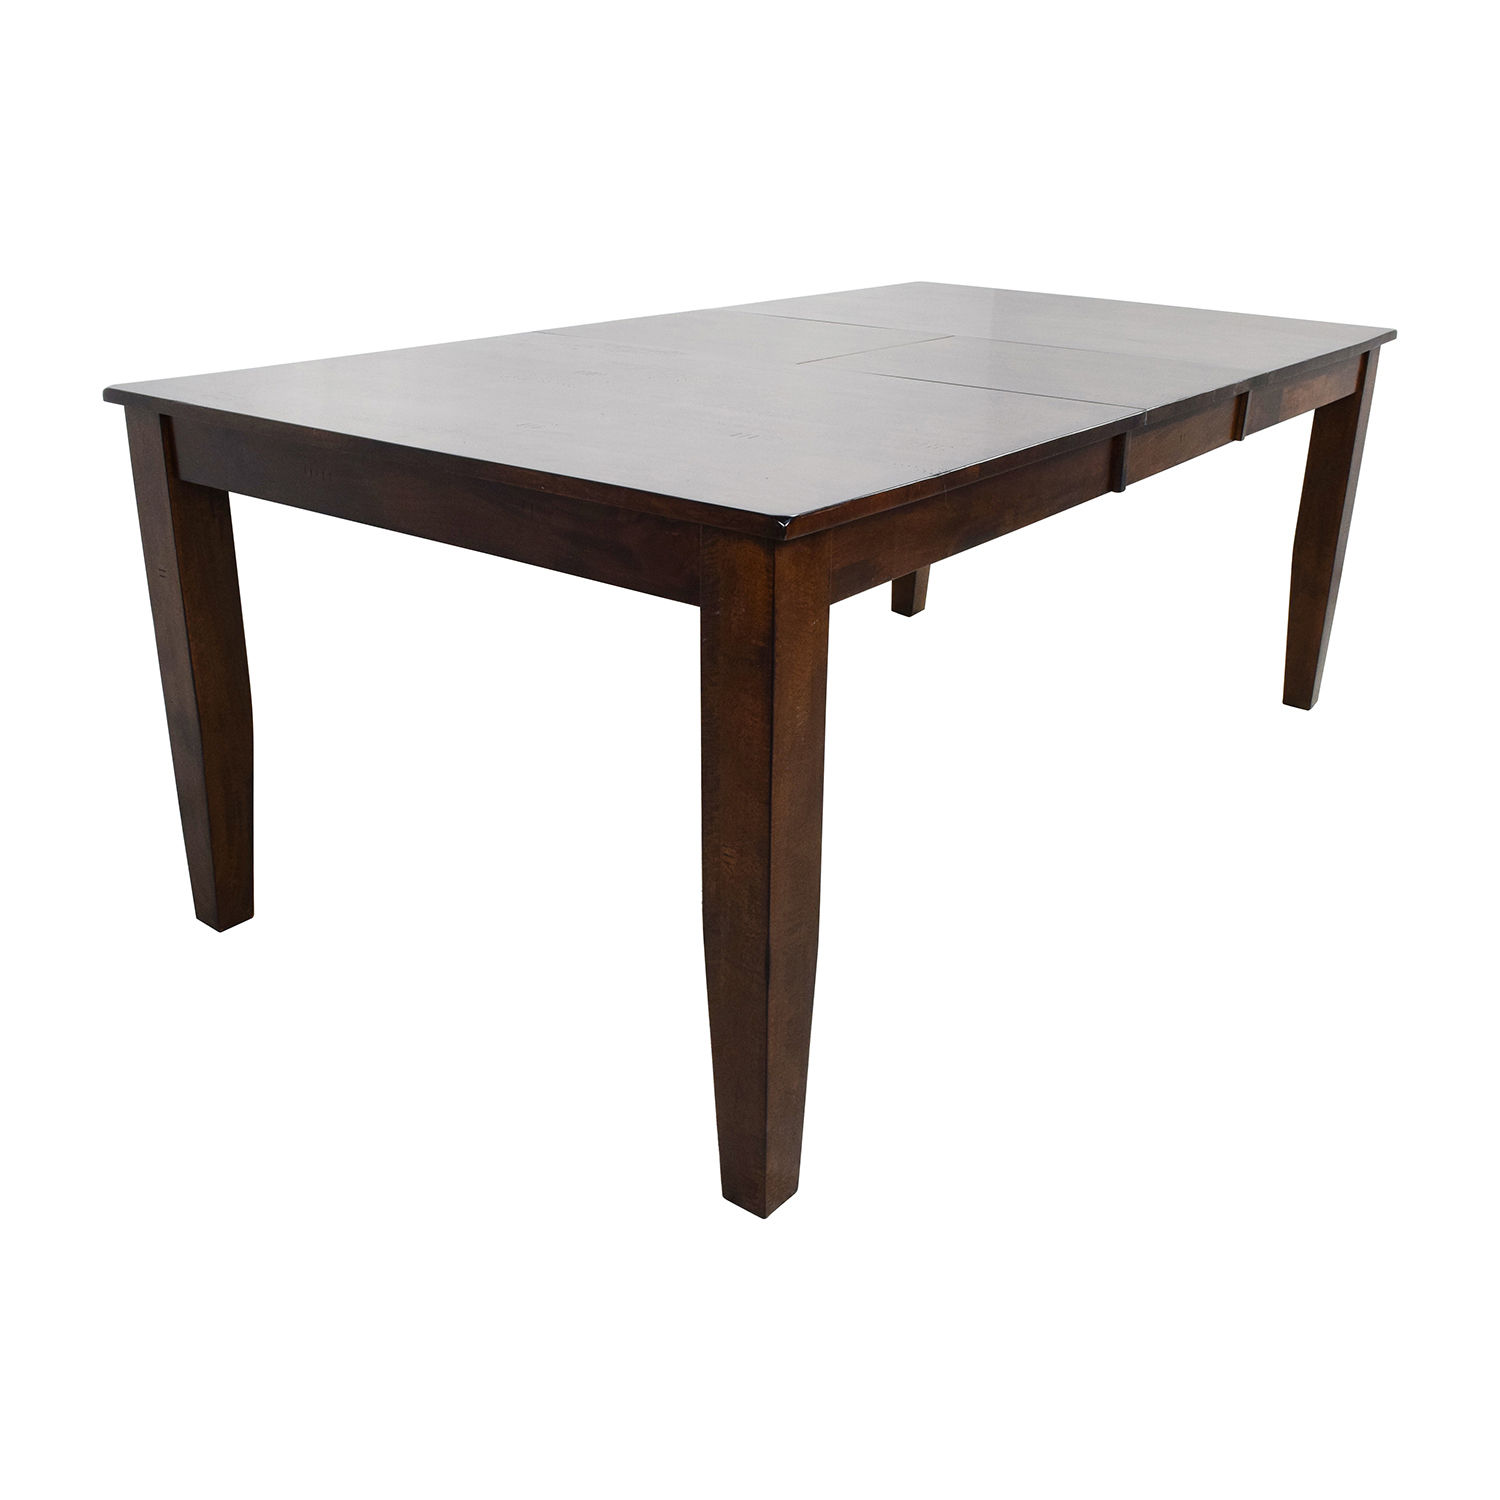 73 Off Raymour Flanigan Raymour Flanigan Kona Dining Table Tables